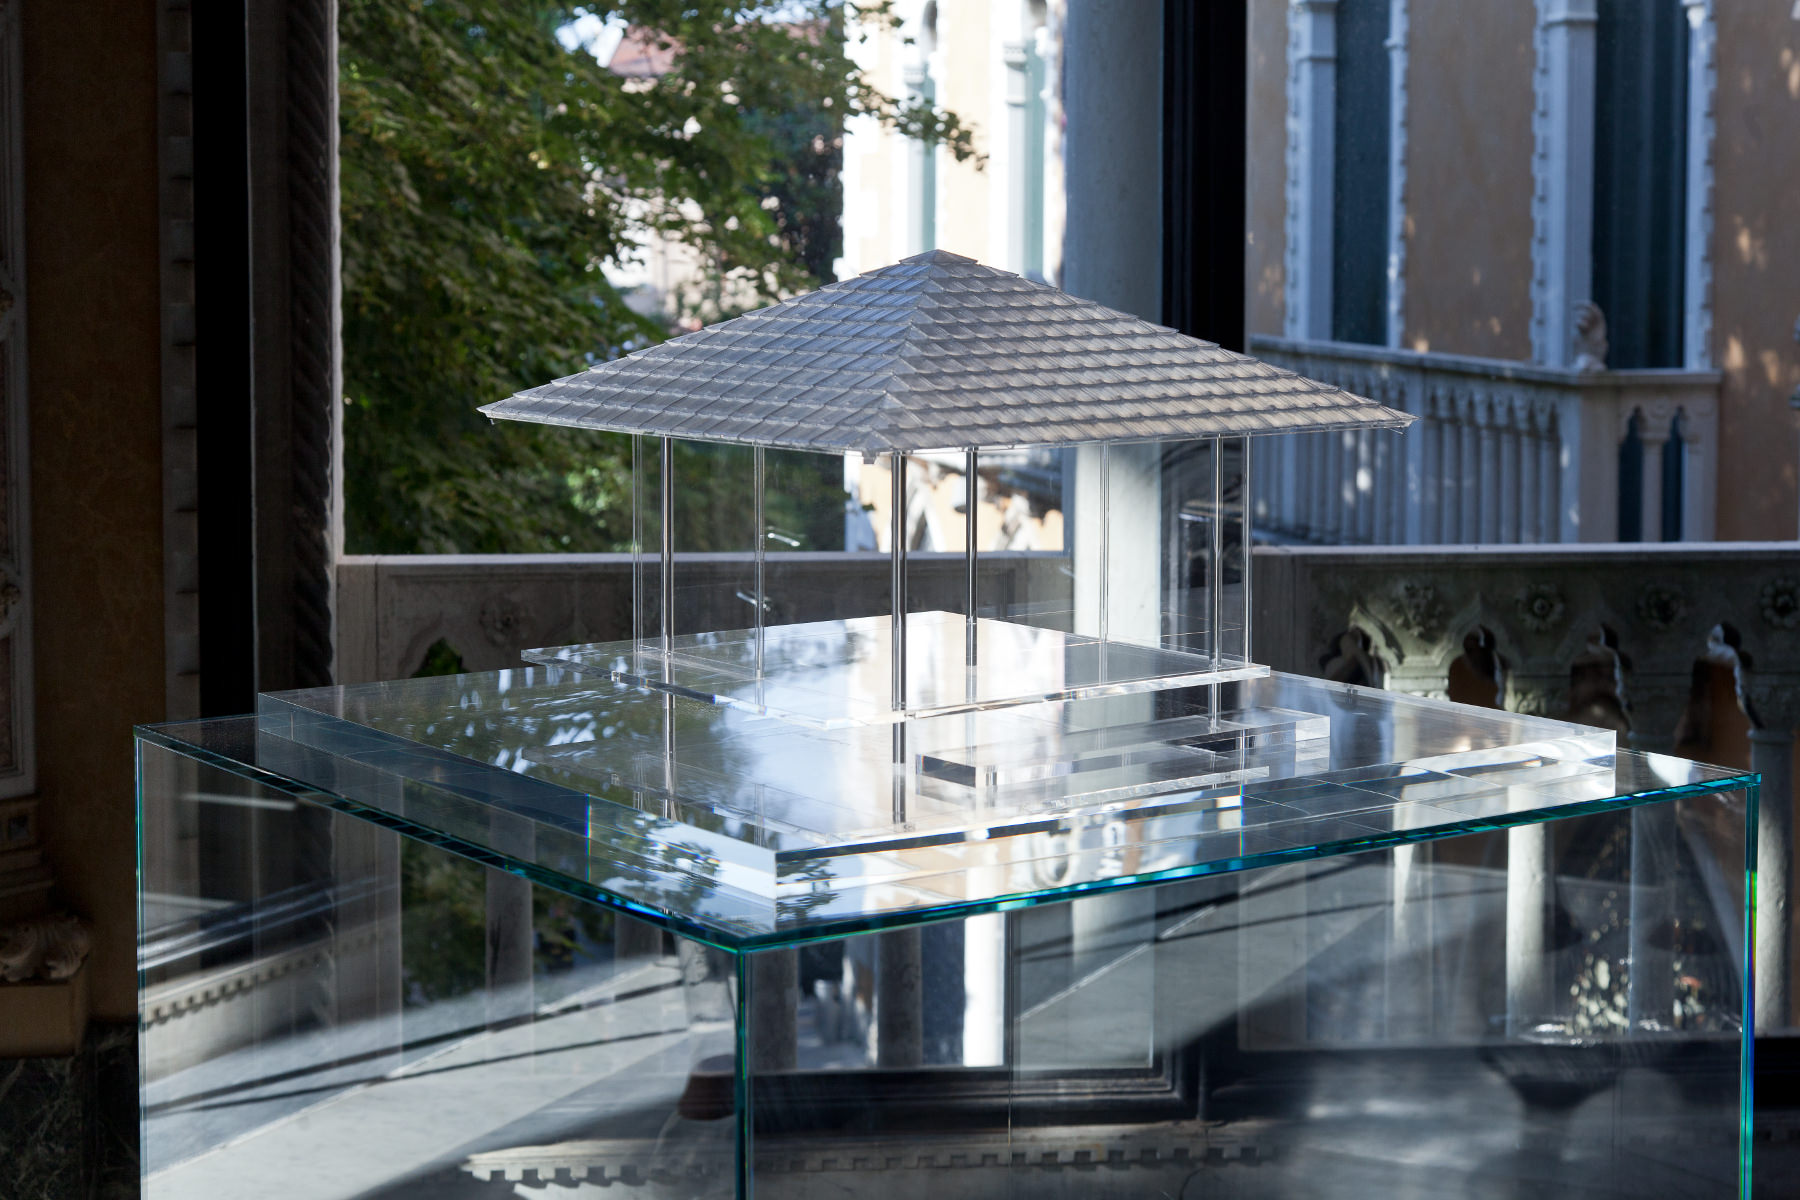 Tokujin Yoshioka - The Glass Tea House